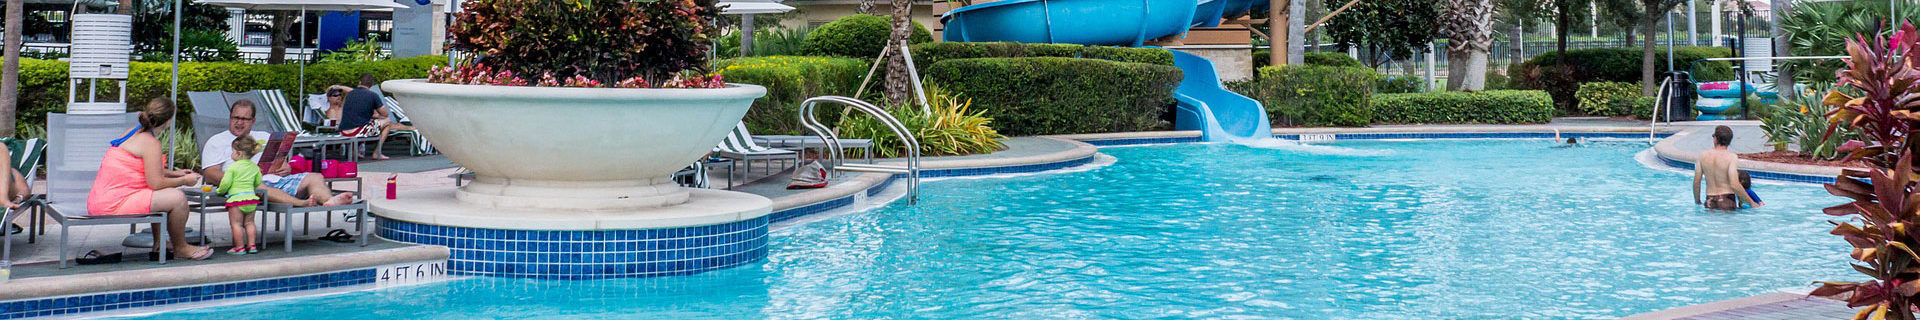 La Jolla Pool Services